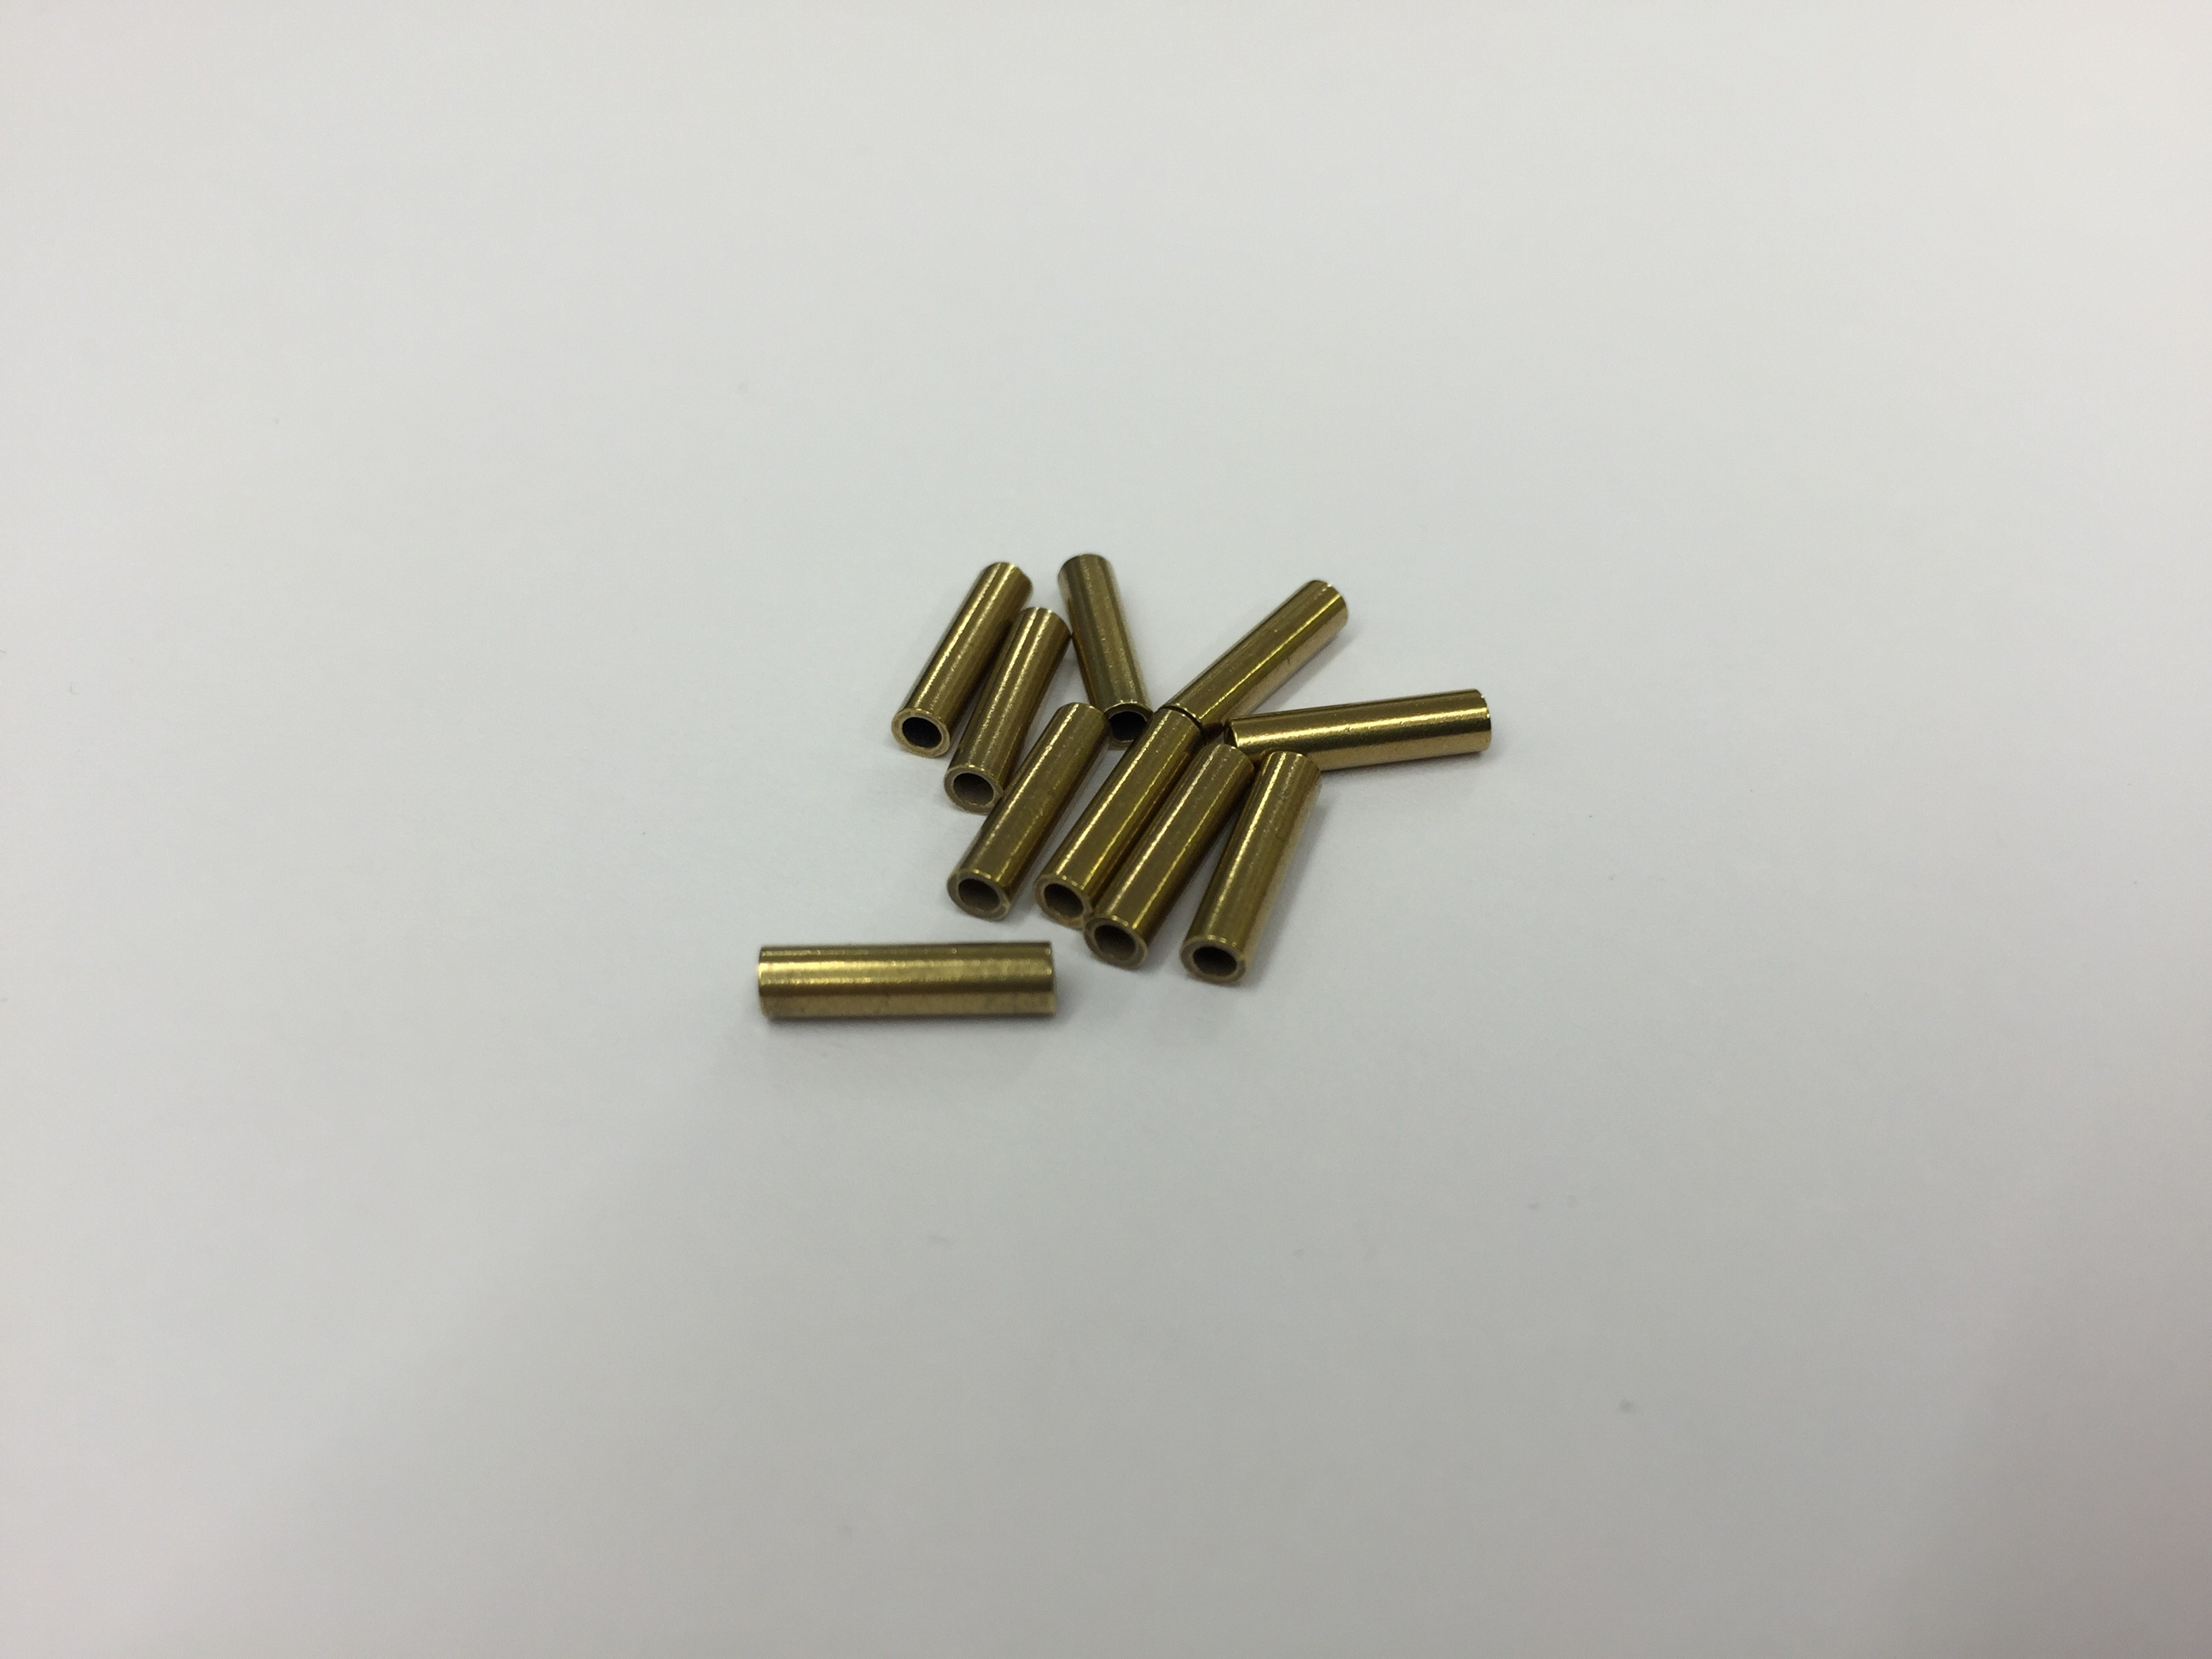 Crimping Ferrule for 0.7mm Nylon trace wire - Brass 10 Pack - Nexus ...